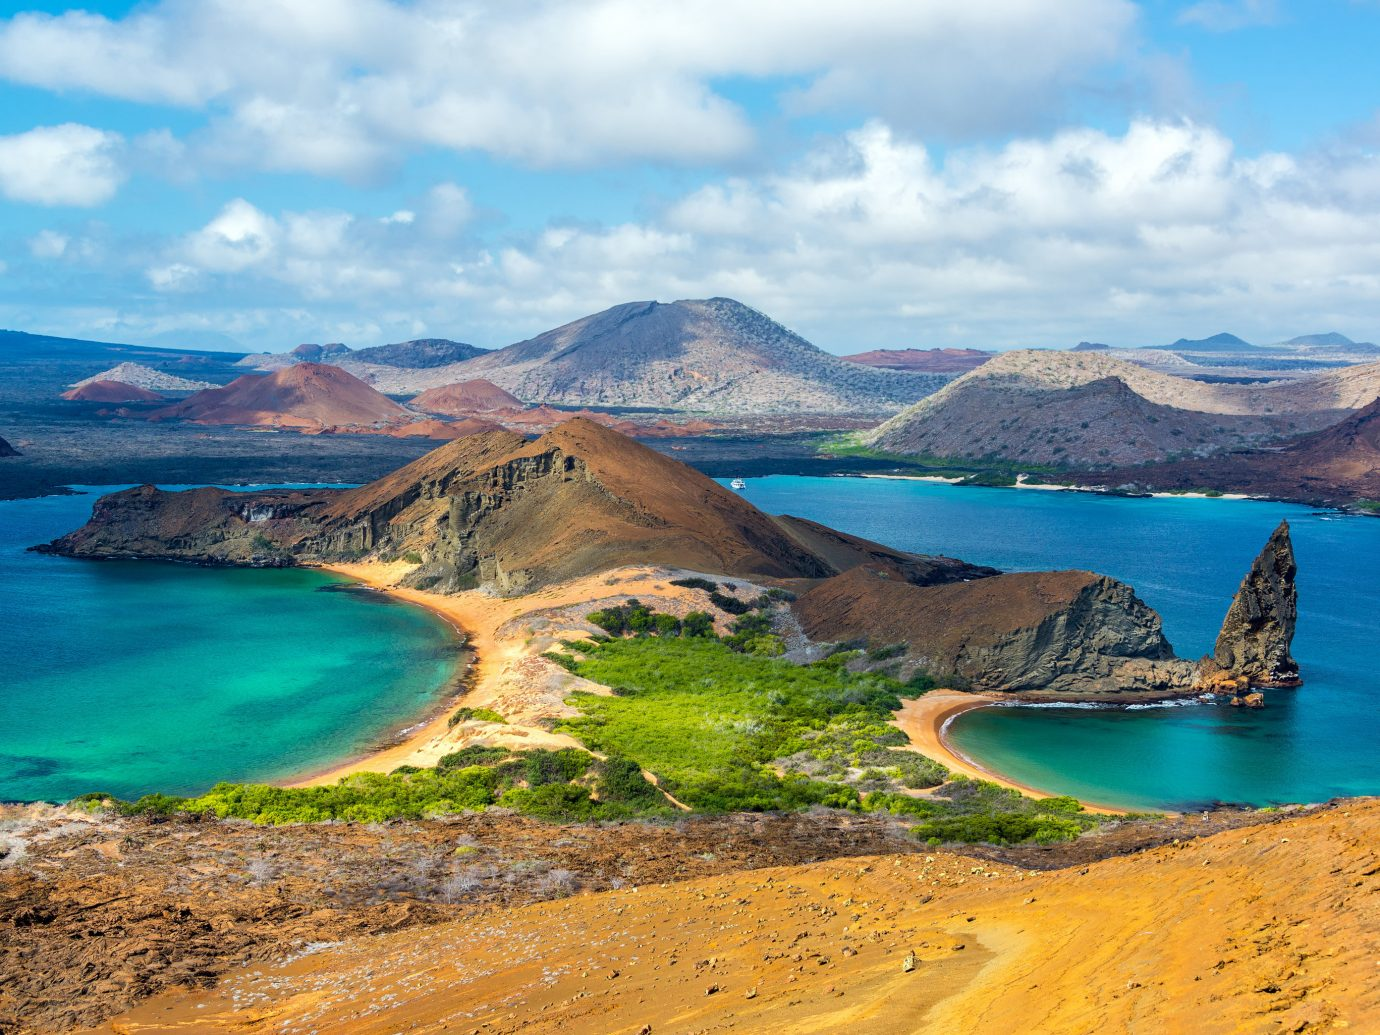 Trip Ideas sky mountain Nature water outdoor Sea Coast landform geographical feature body of water shore Ocean Beach bay loch vacation cove islet Lake cape landscape Island Lagoon terrain cliff reservoir crater lake canyon archipelago rock sandy highland